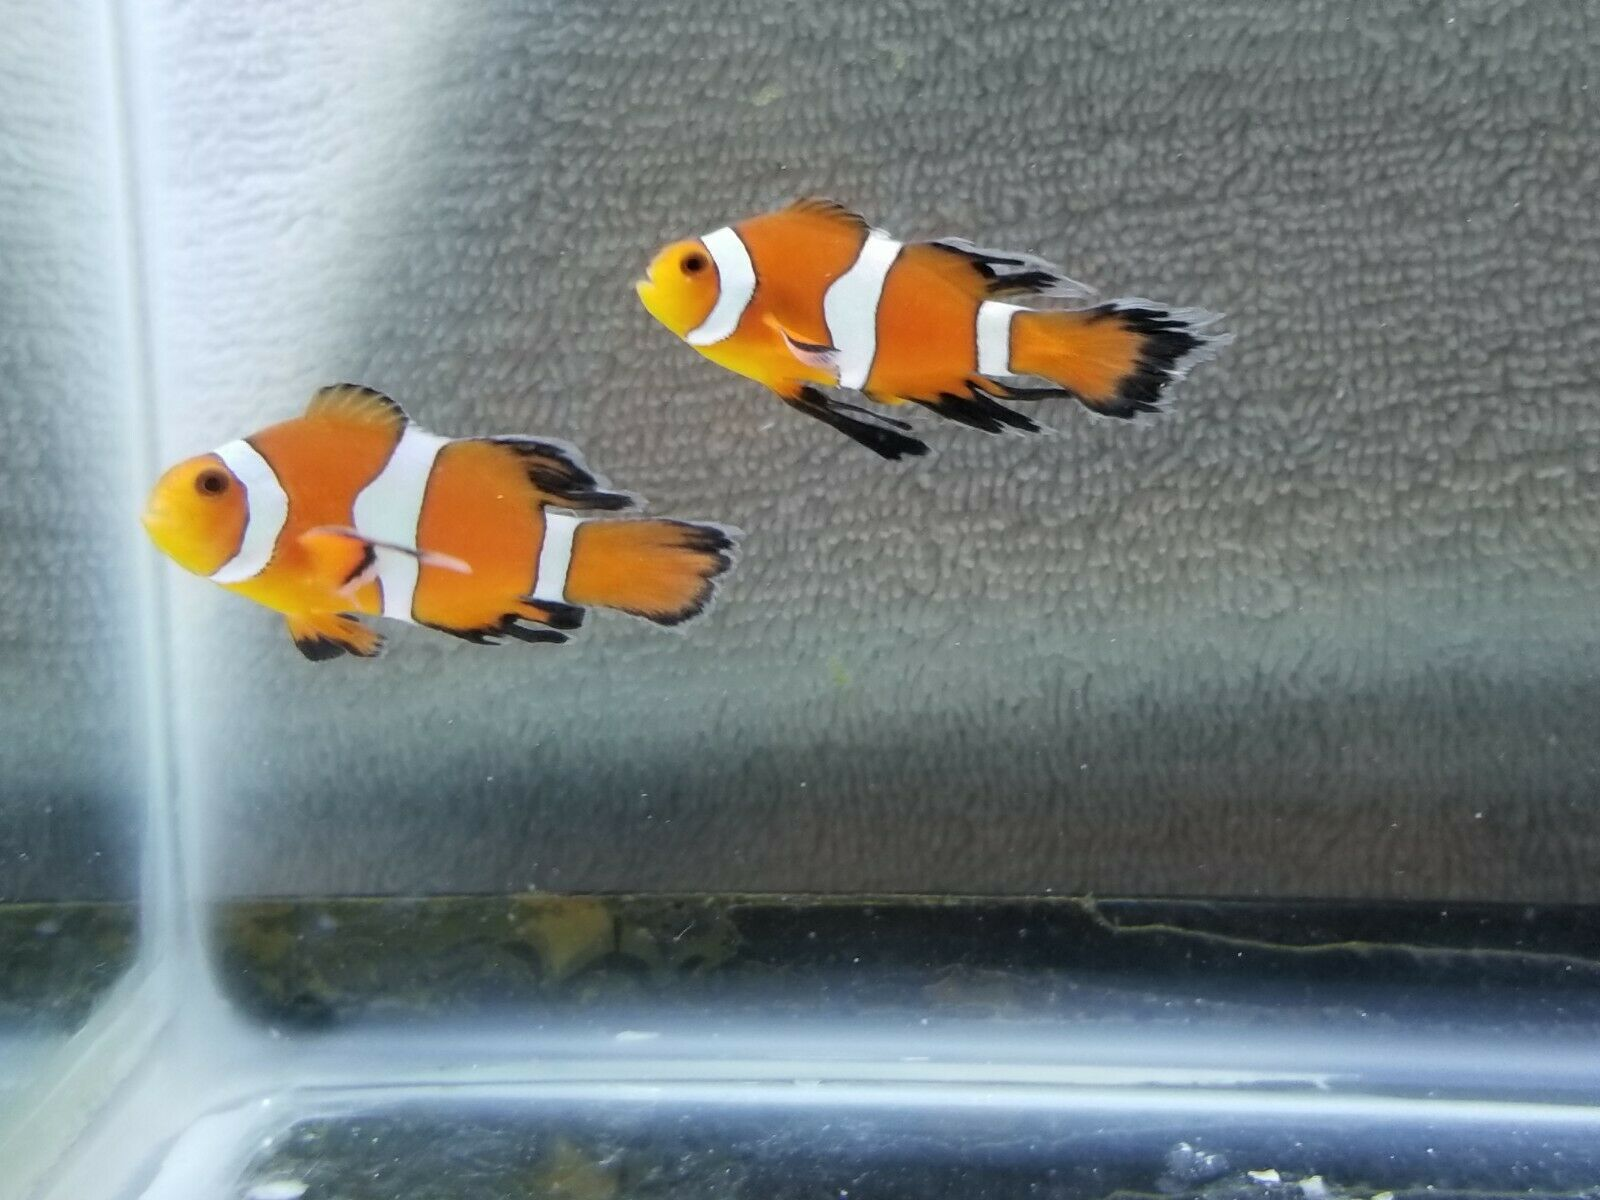 Fancy Longfin Clownfish Pair 50 00 One Day Shipping Clown Fish Marine Aquarium Fish Marine Fish For Sale